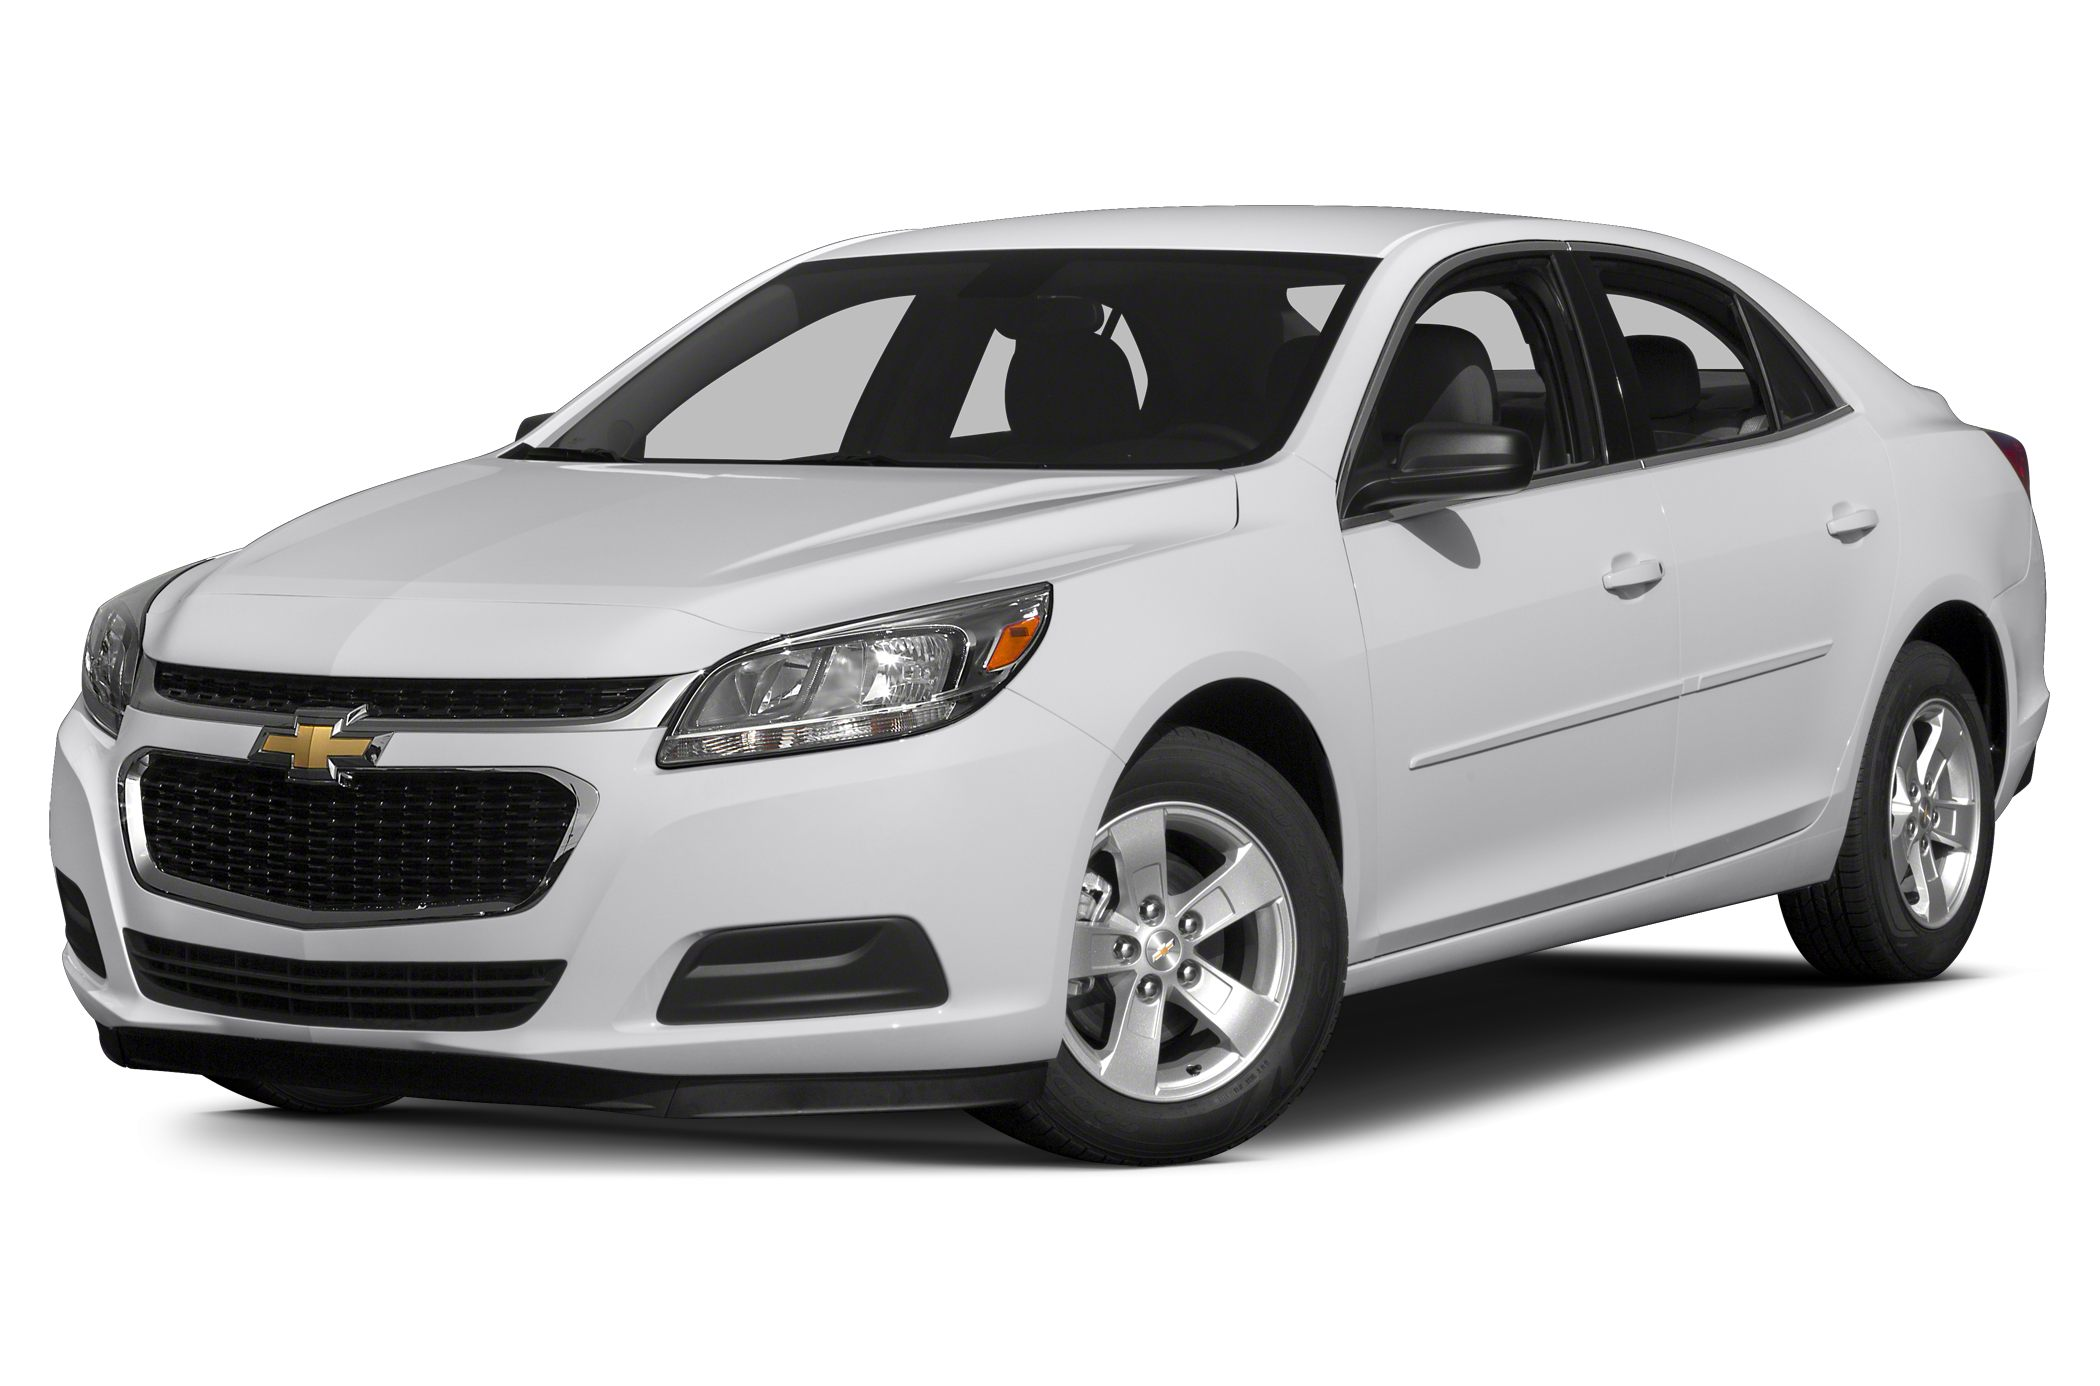 2015 Chevrolet Malibu 1LT Sedan for sale in West Plains for $27,185 with 0 miles.